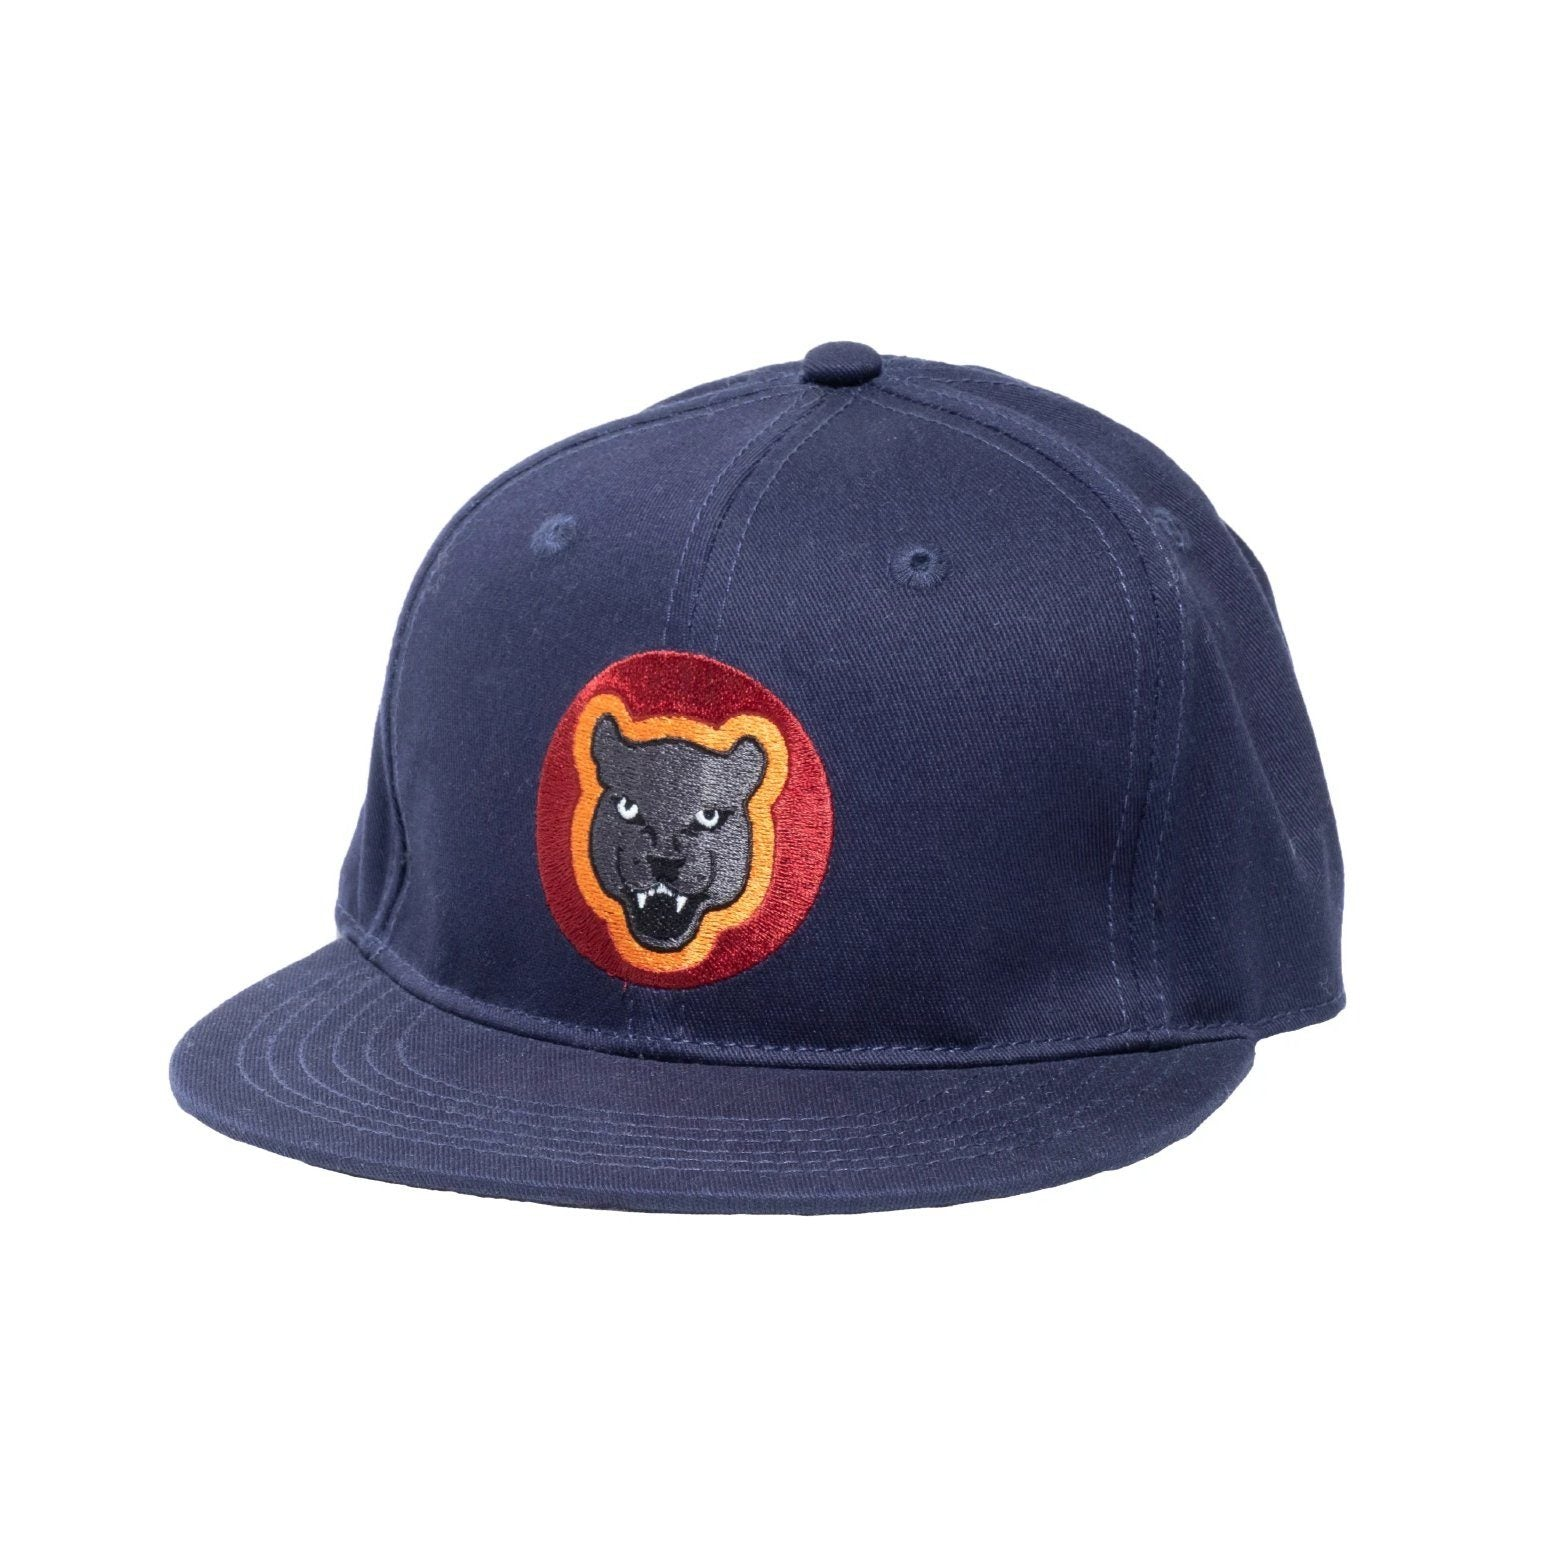 Black Panther Hip Hop Cap